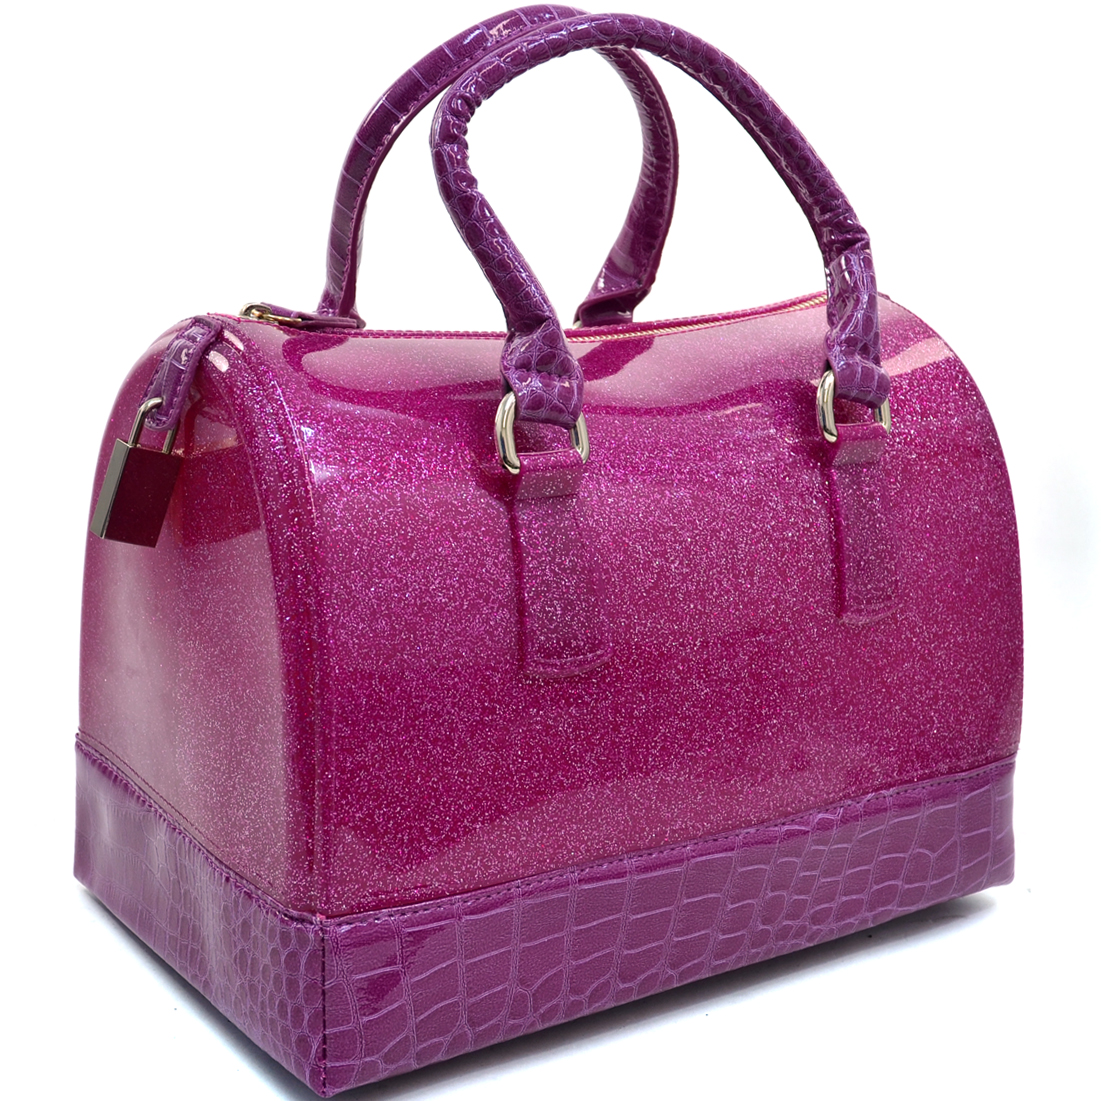 Croco Trim Glitter Jelly Satchel